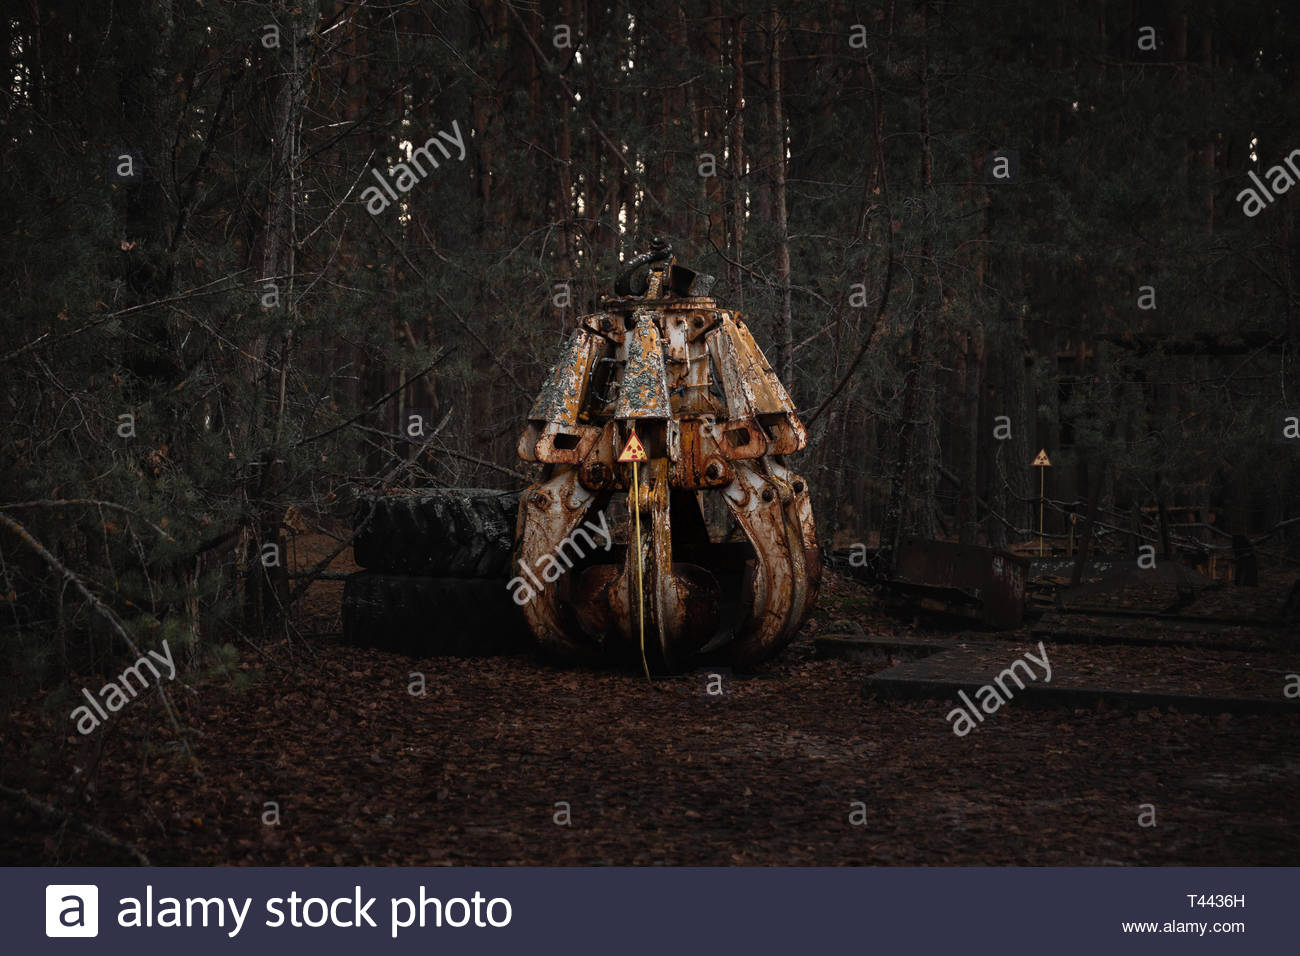 The highly contaminated Claw, machine part in Chernobyl Exclusion Zone, 2019 closeup - Stock Image